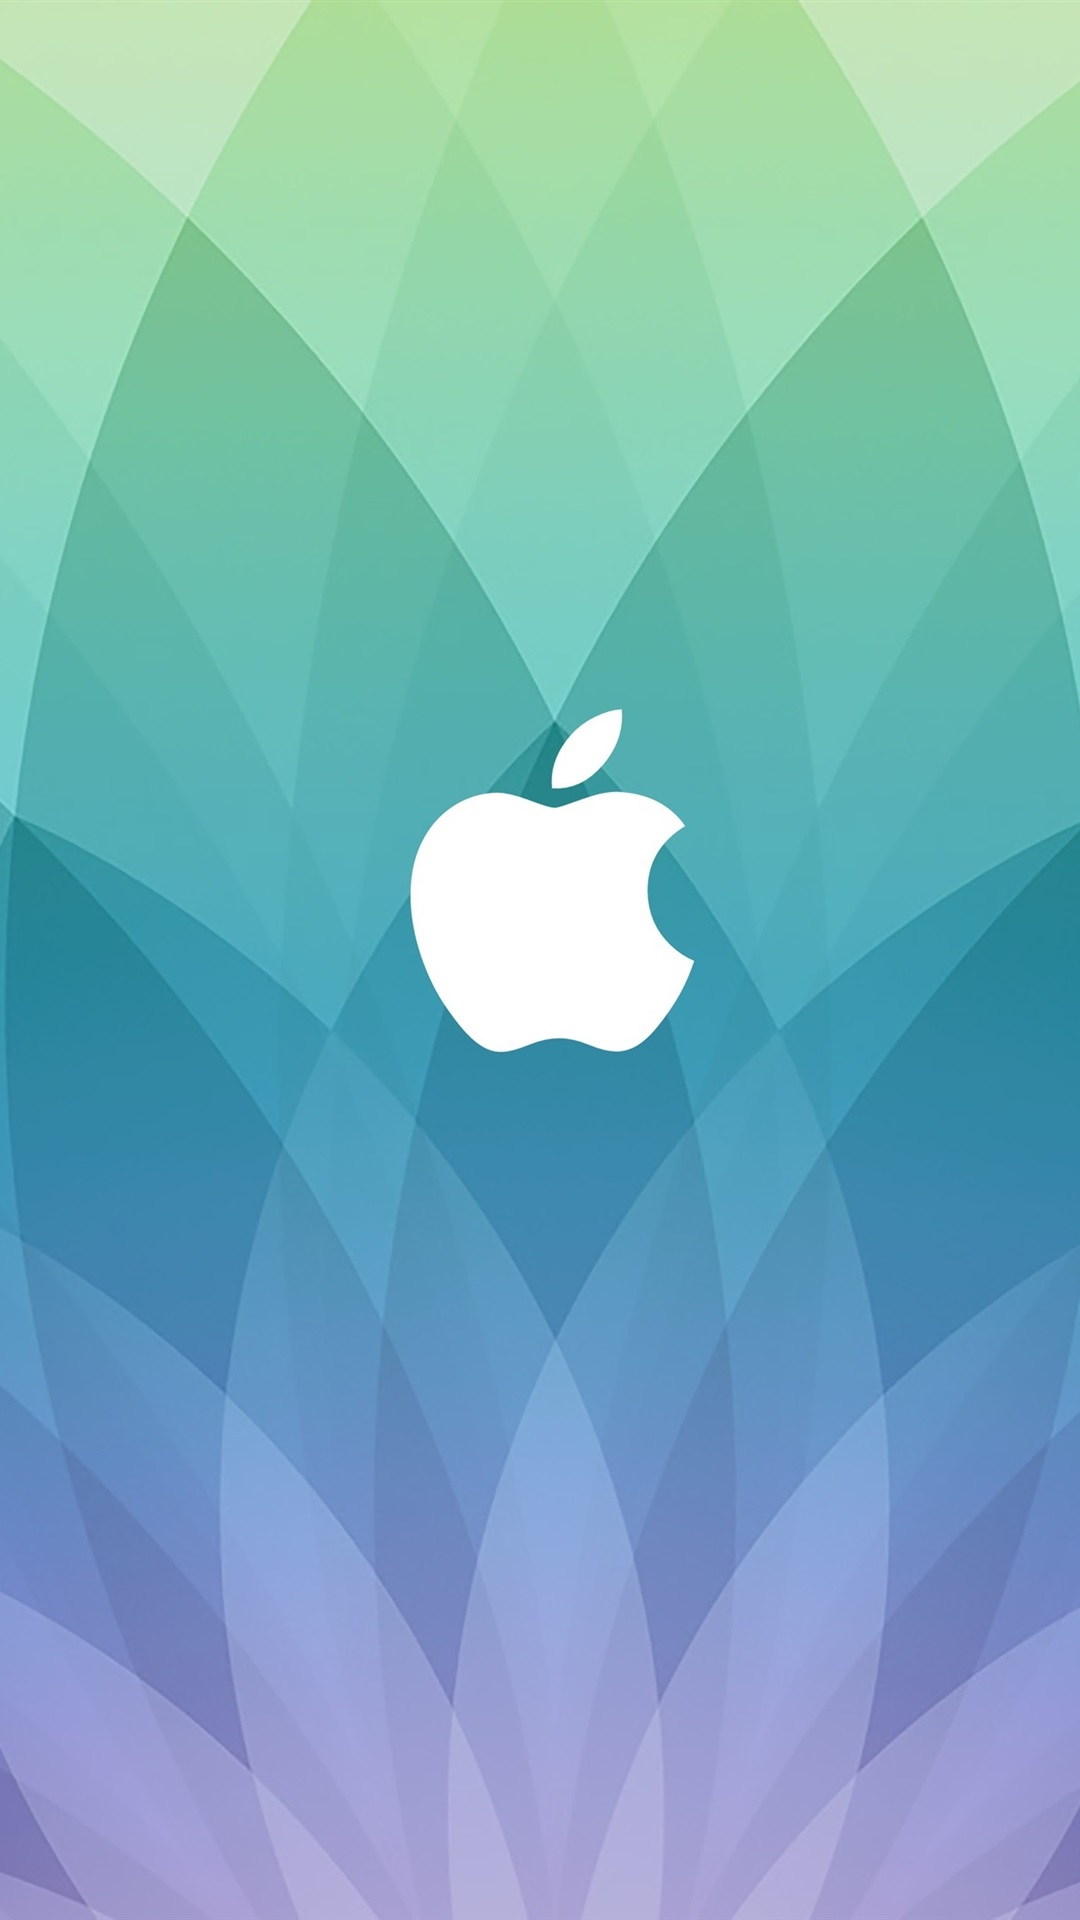 Wallpaper Apple Logo Blue Sector Shaped Background